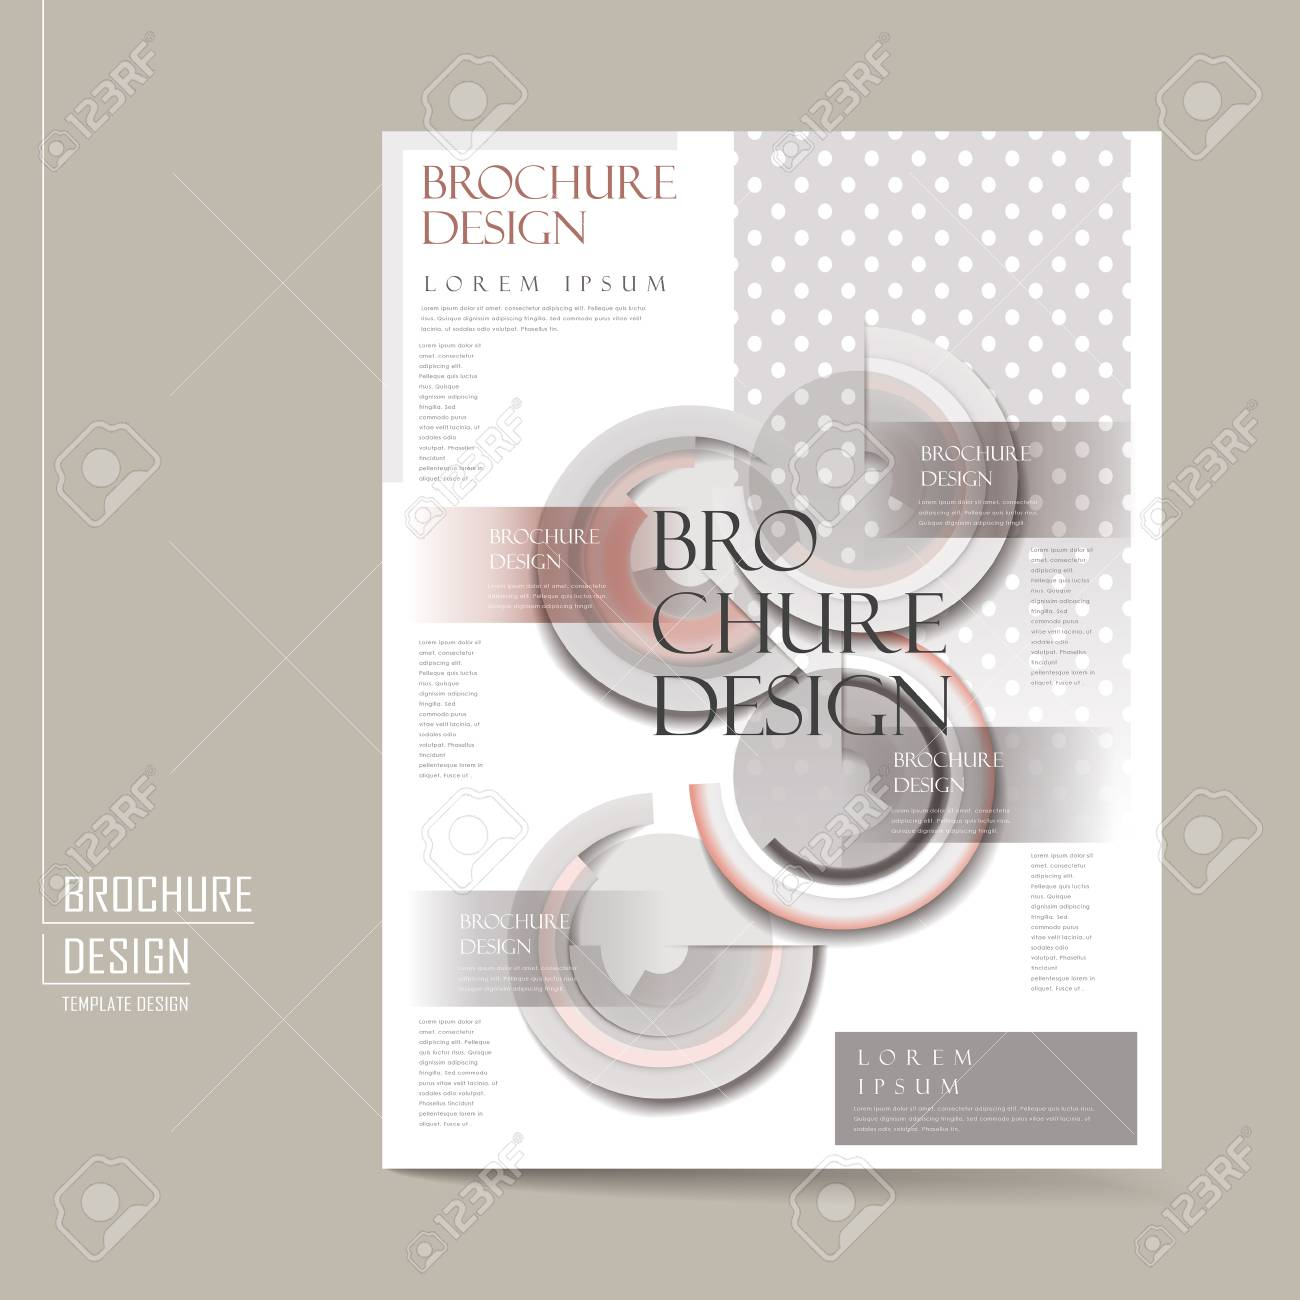 Elegant Brochure Template Design With Geometric Elements In Grey